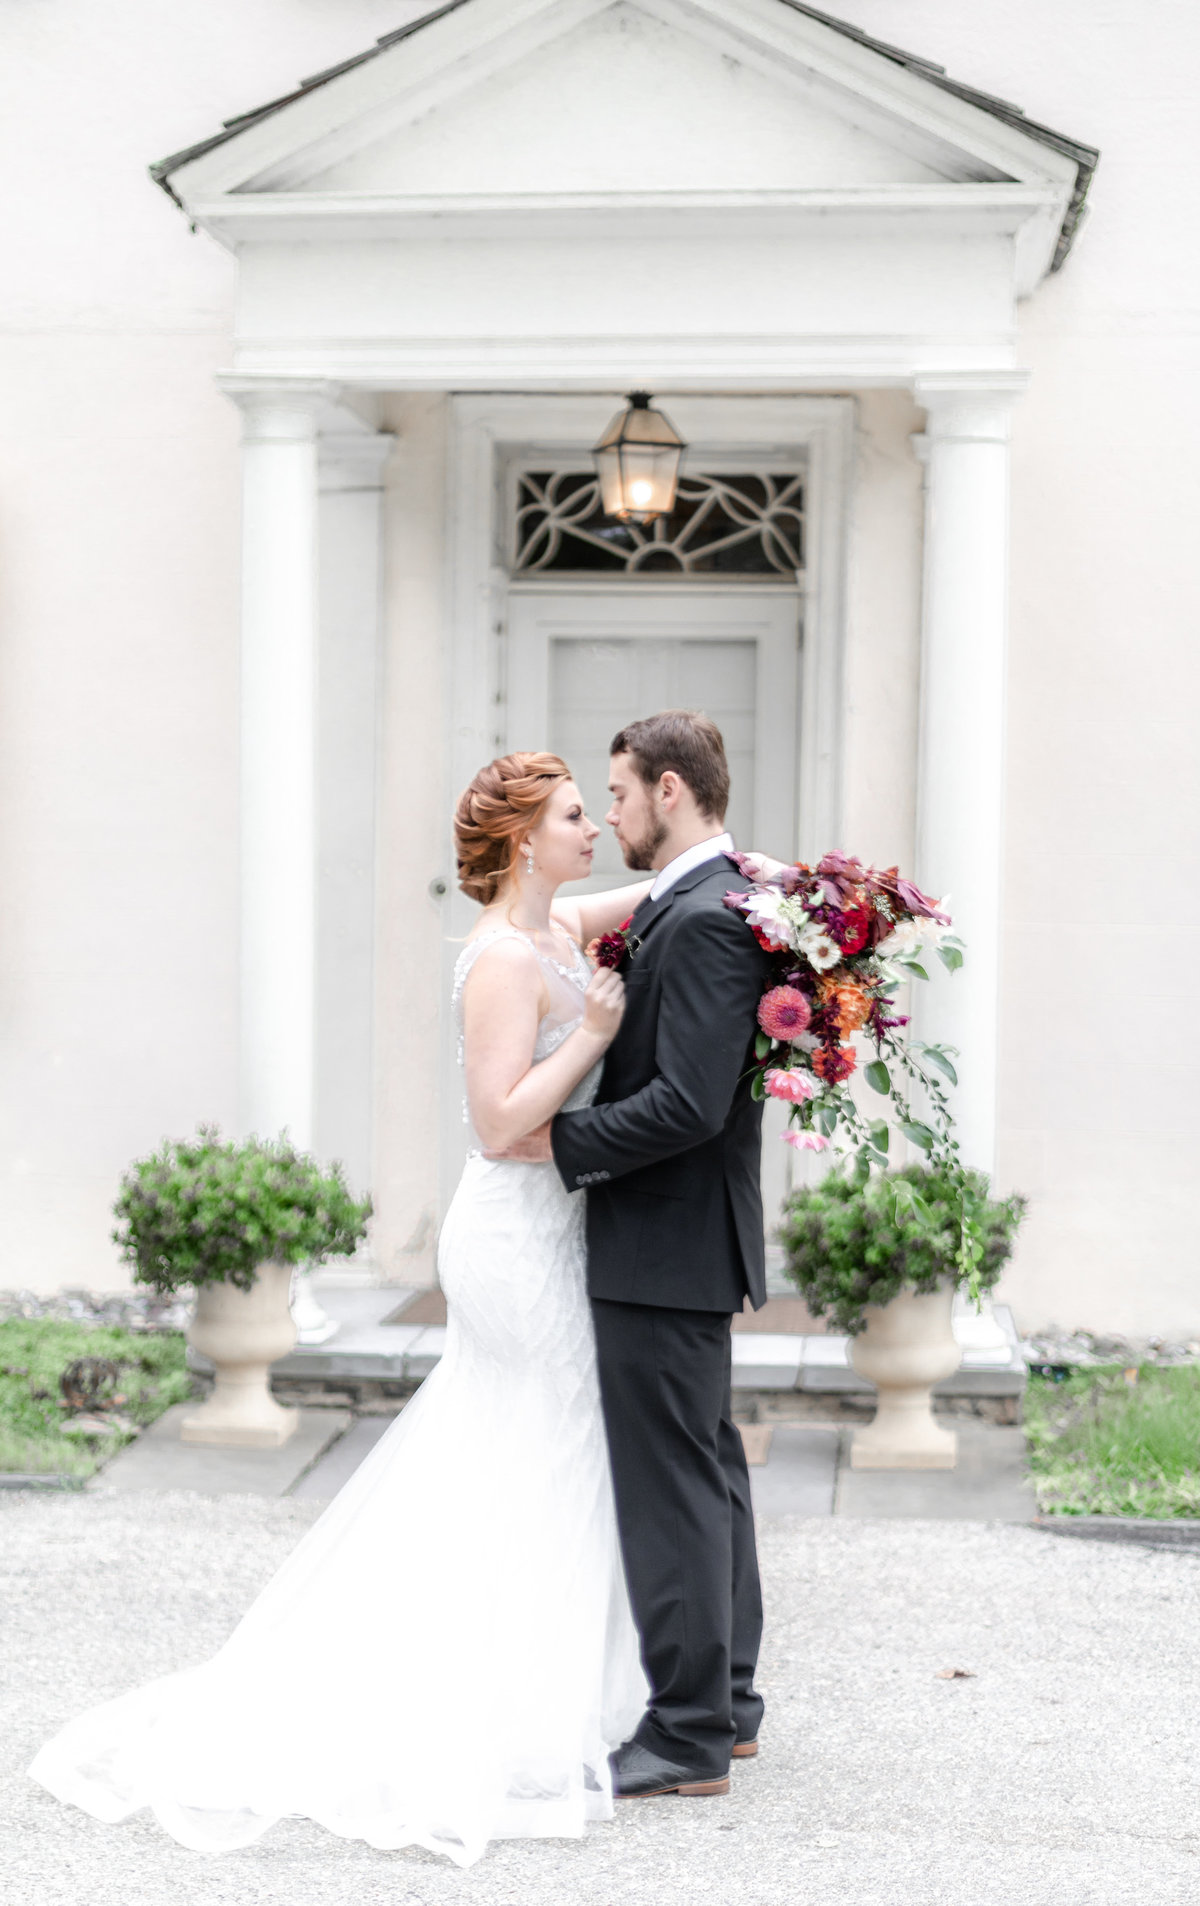 Wadsworth Mansion wedding with red headed bride and red burgundy white and greenery bouquet